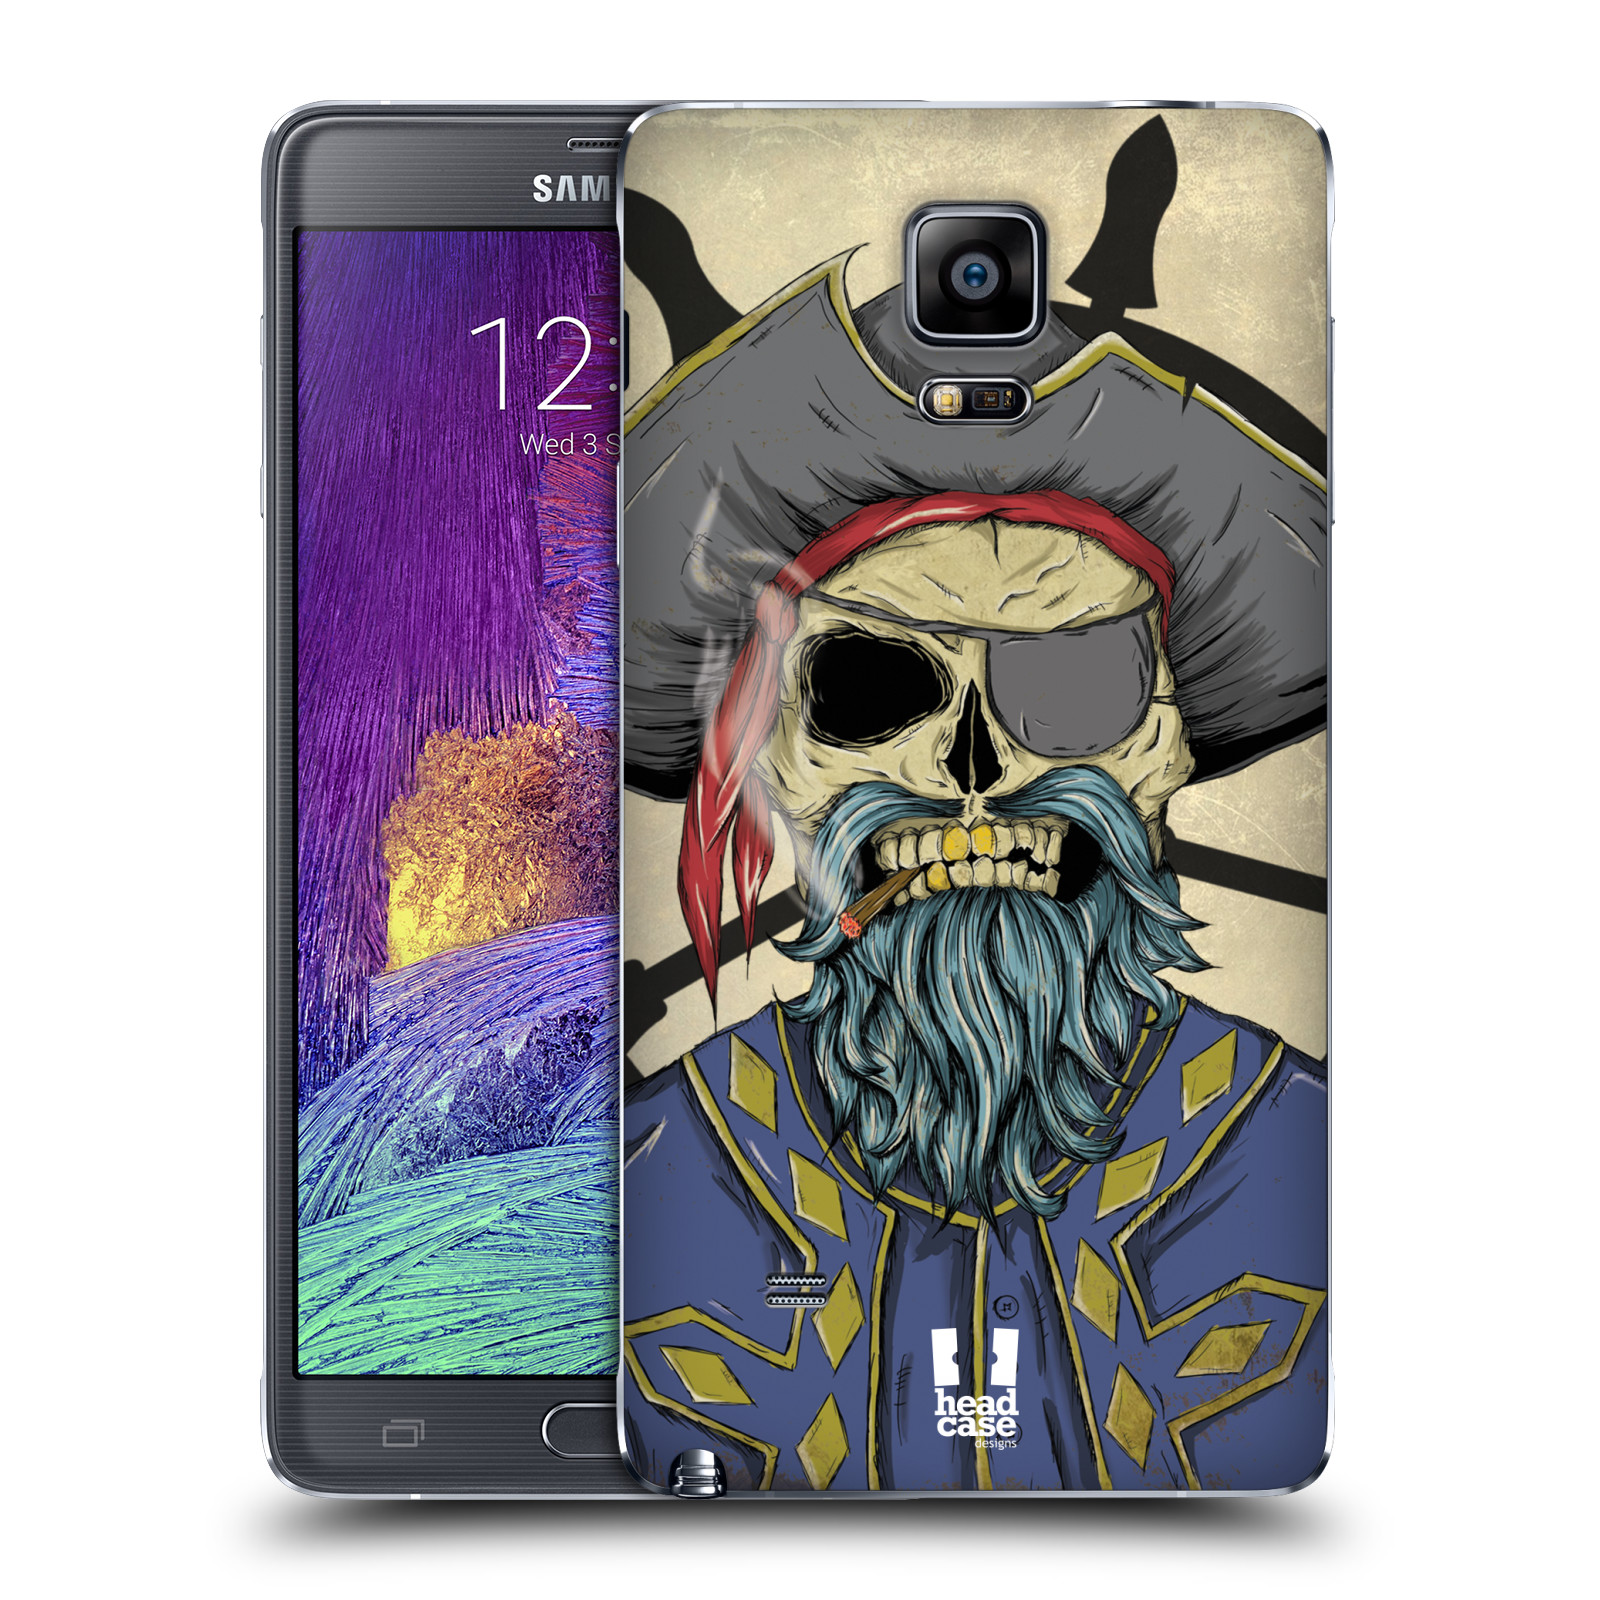 HEAD-CASE-DESIGNS-SCHADEL-PIRATEN-BATTERIEABDECKUNG-FUR-SAMSUNG-HANDYS-1